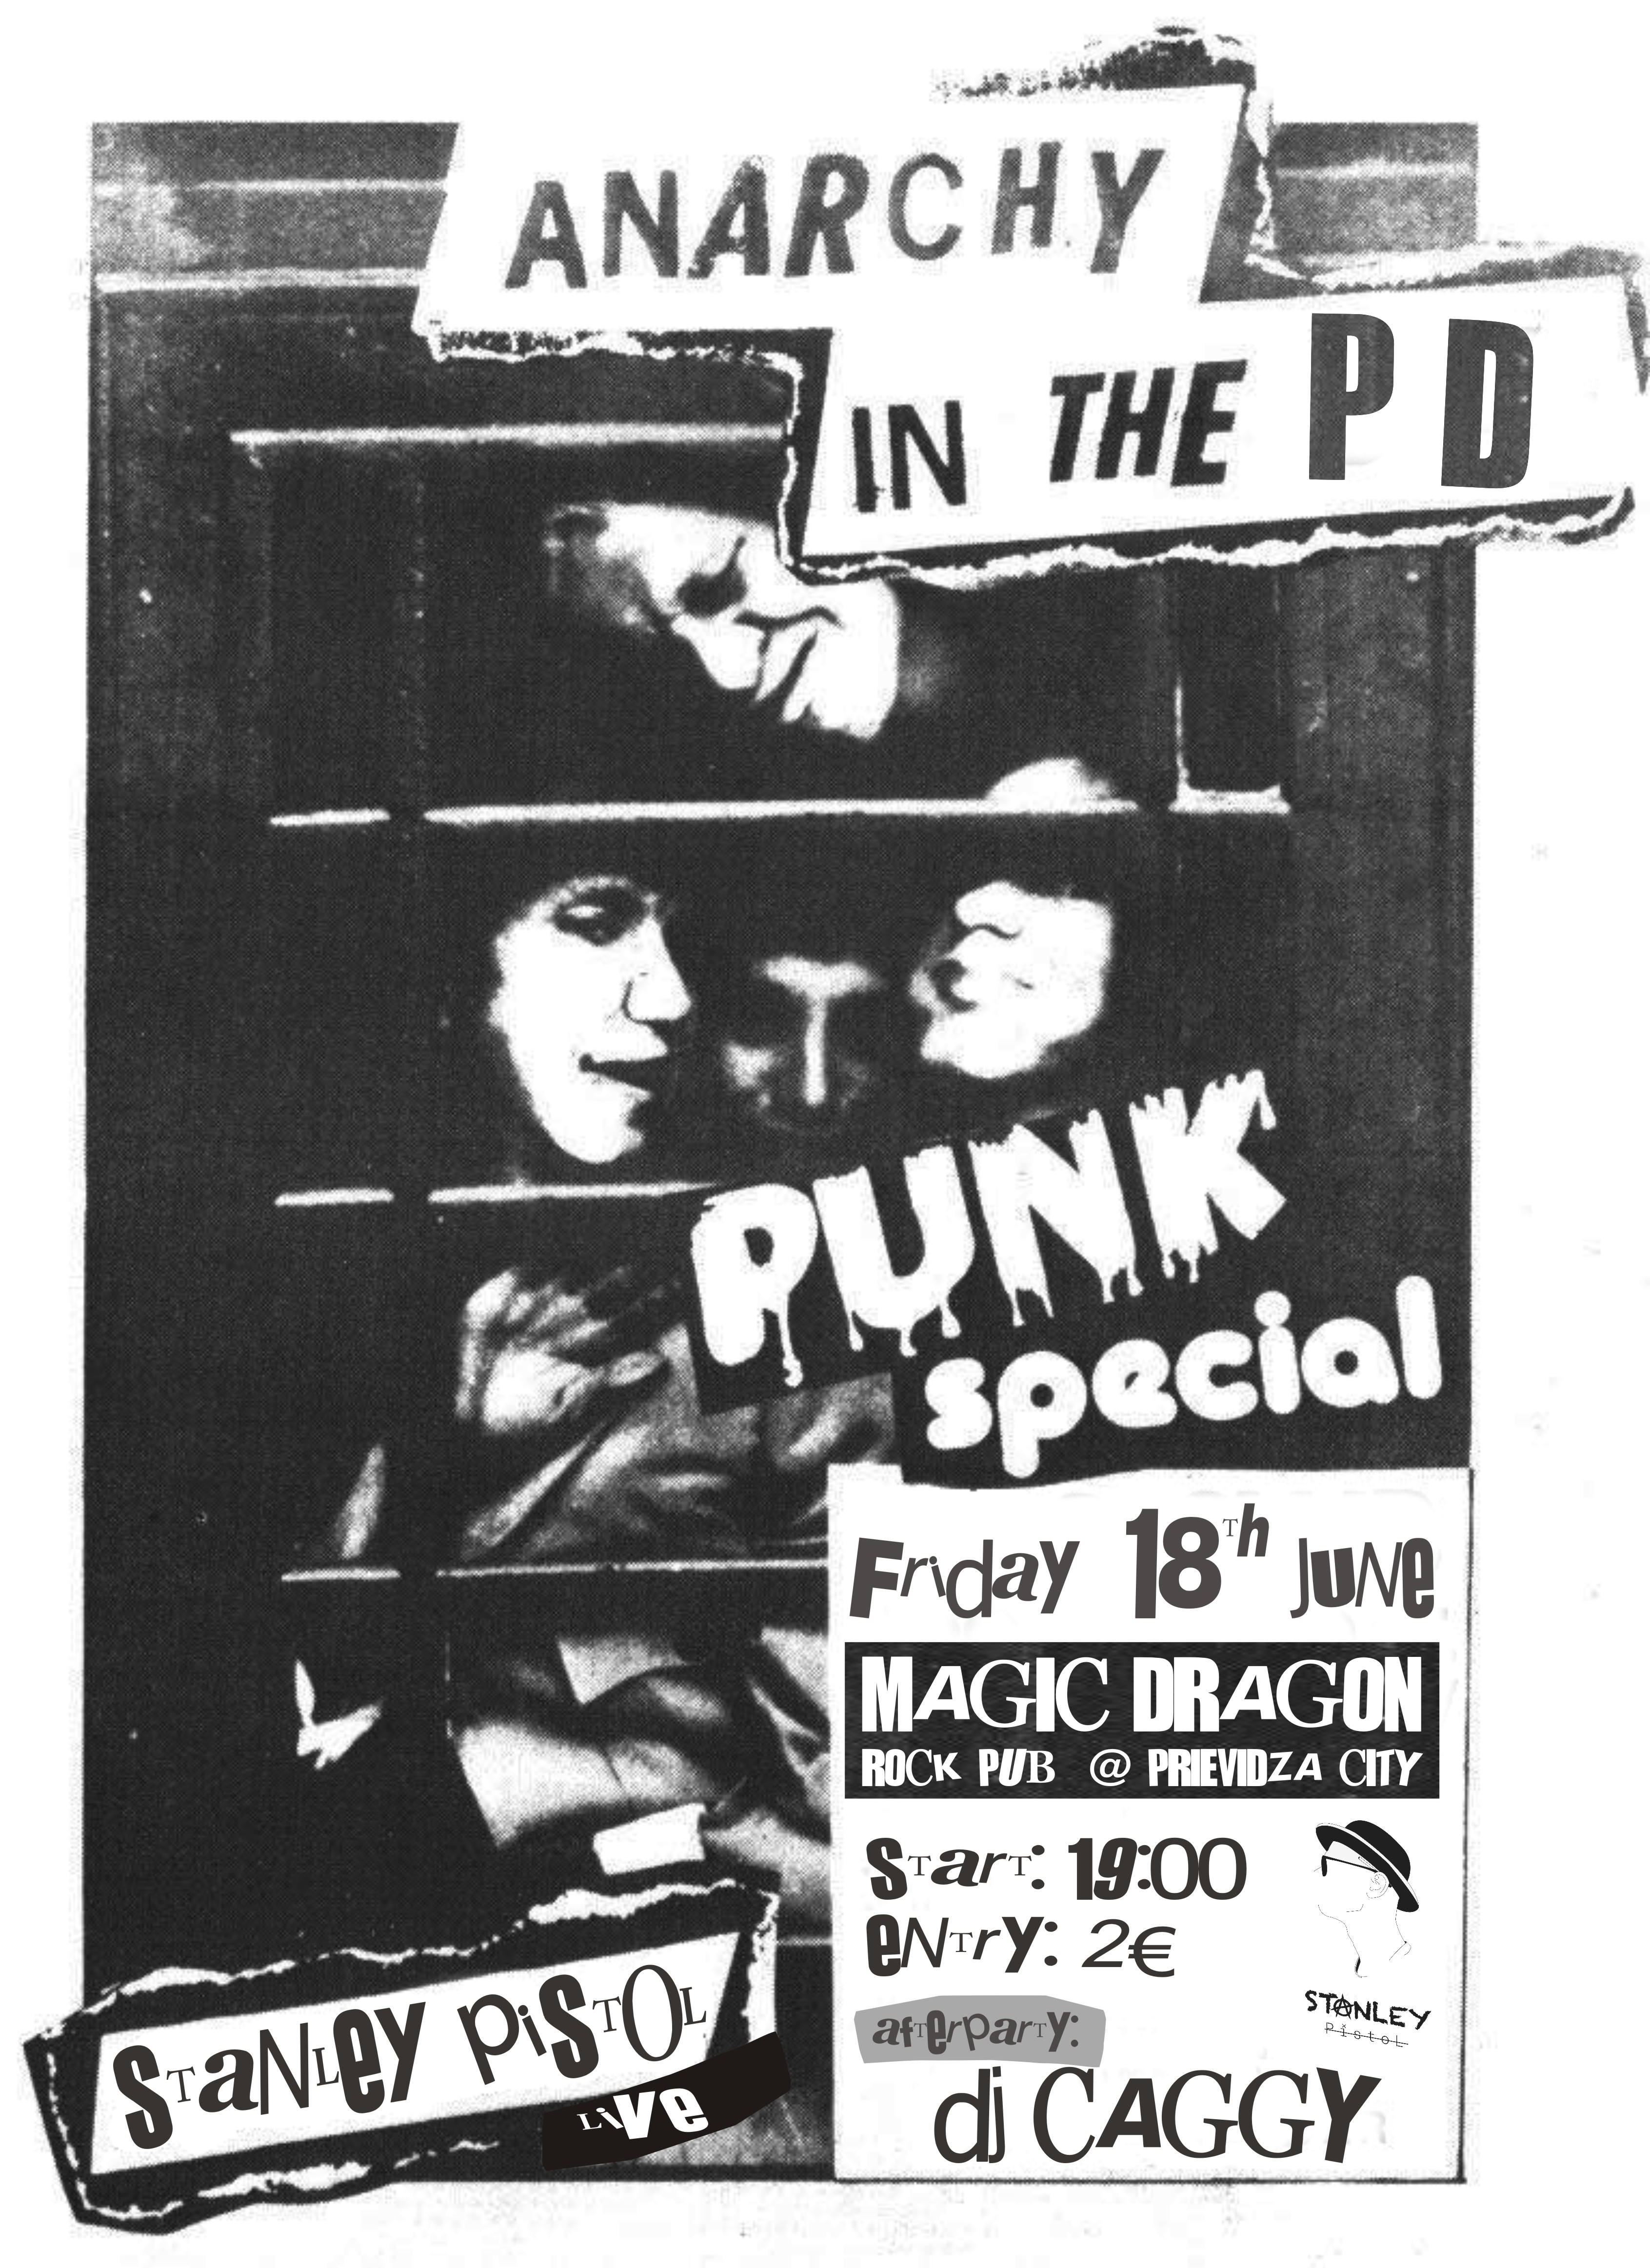 Anarchy in The PD (Stanley Pistol live + DJ Caggy @ Magic Dragon)